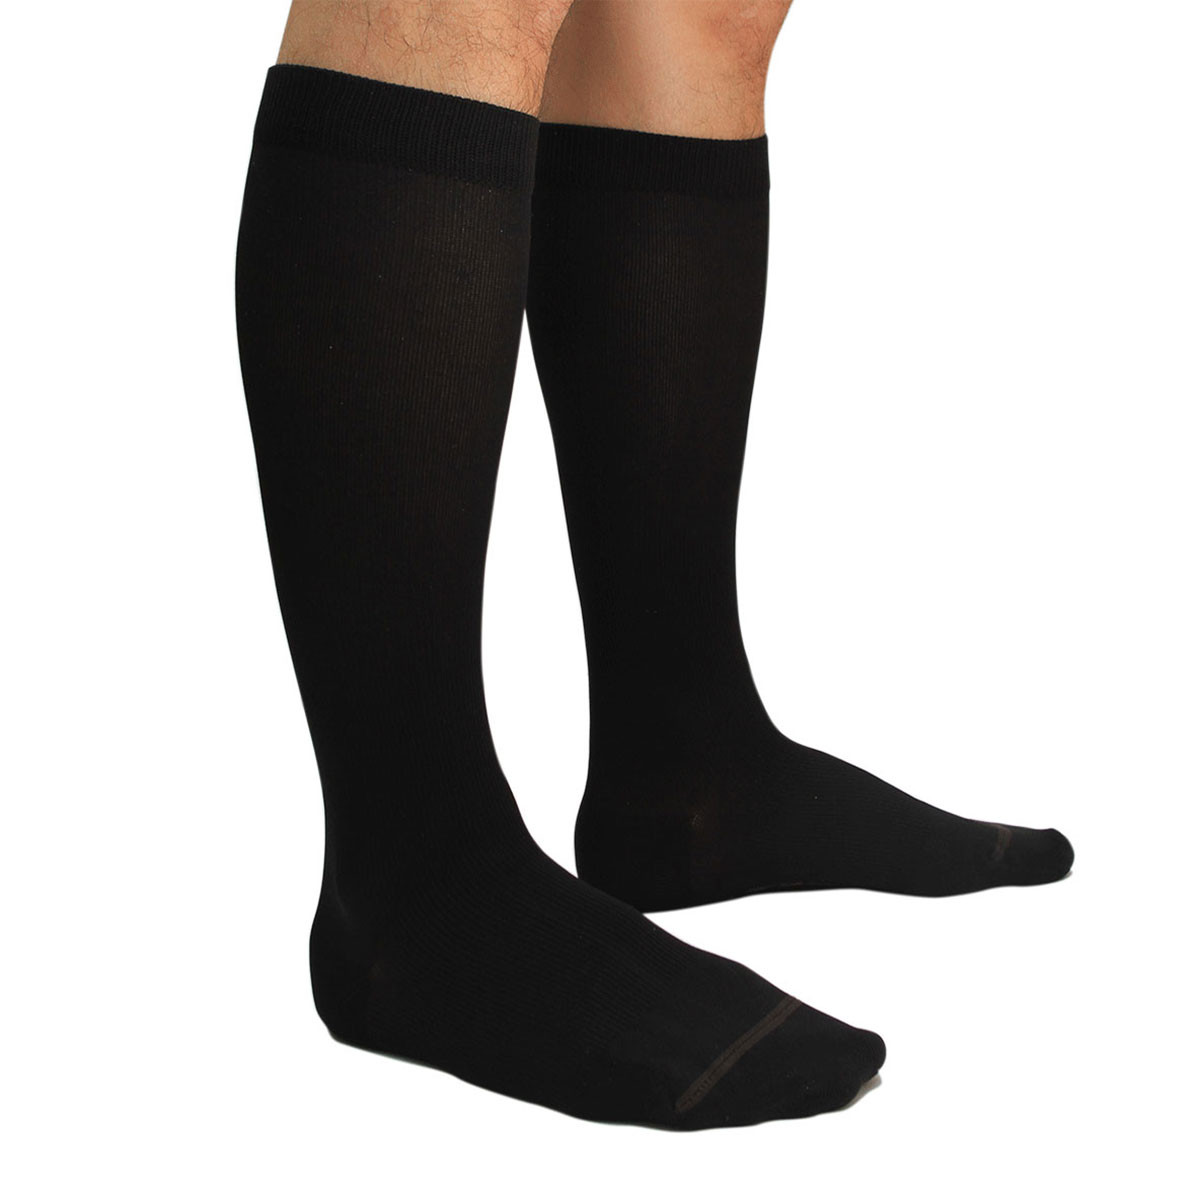 male-model-wearing-comfort-mens-compression-socks-by-txg-new-zealand